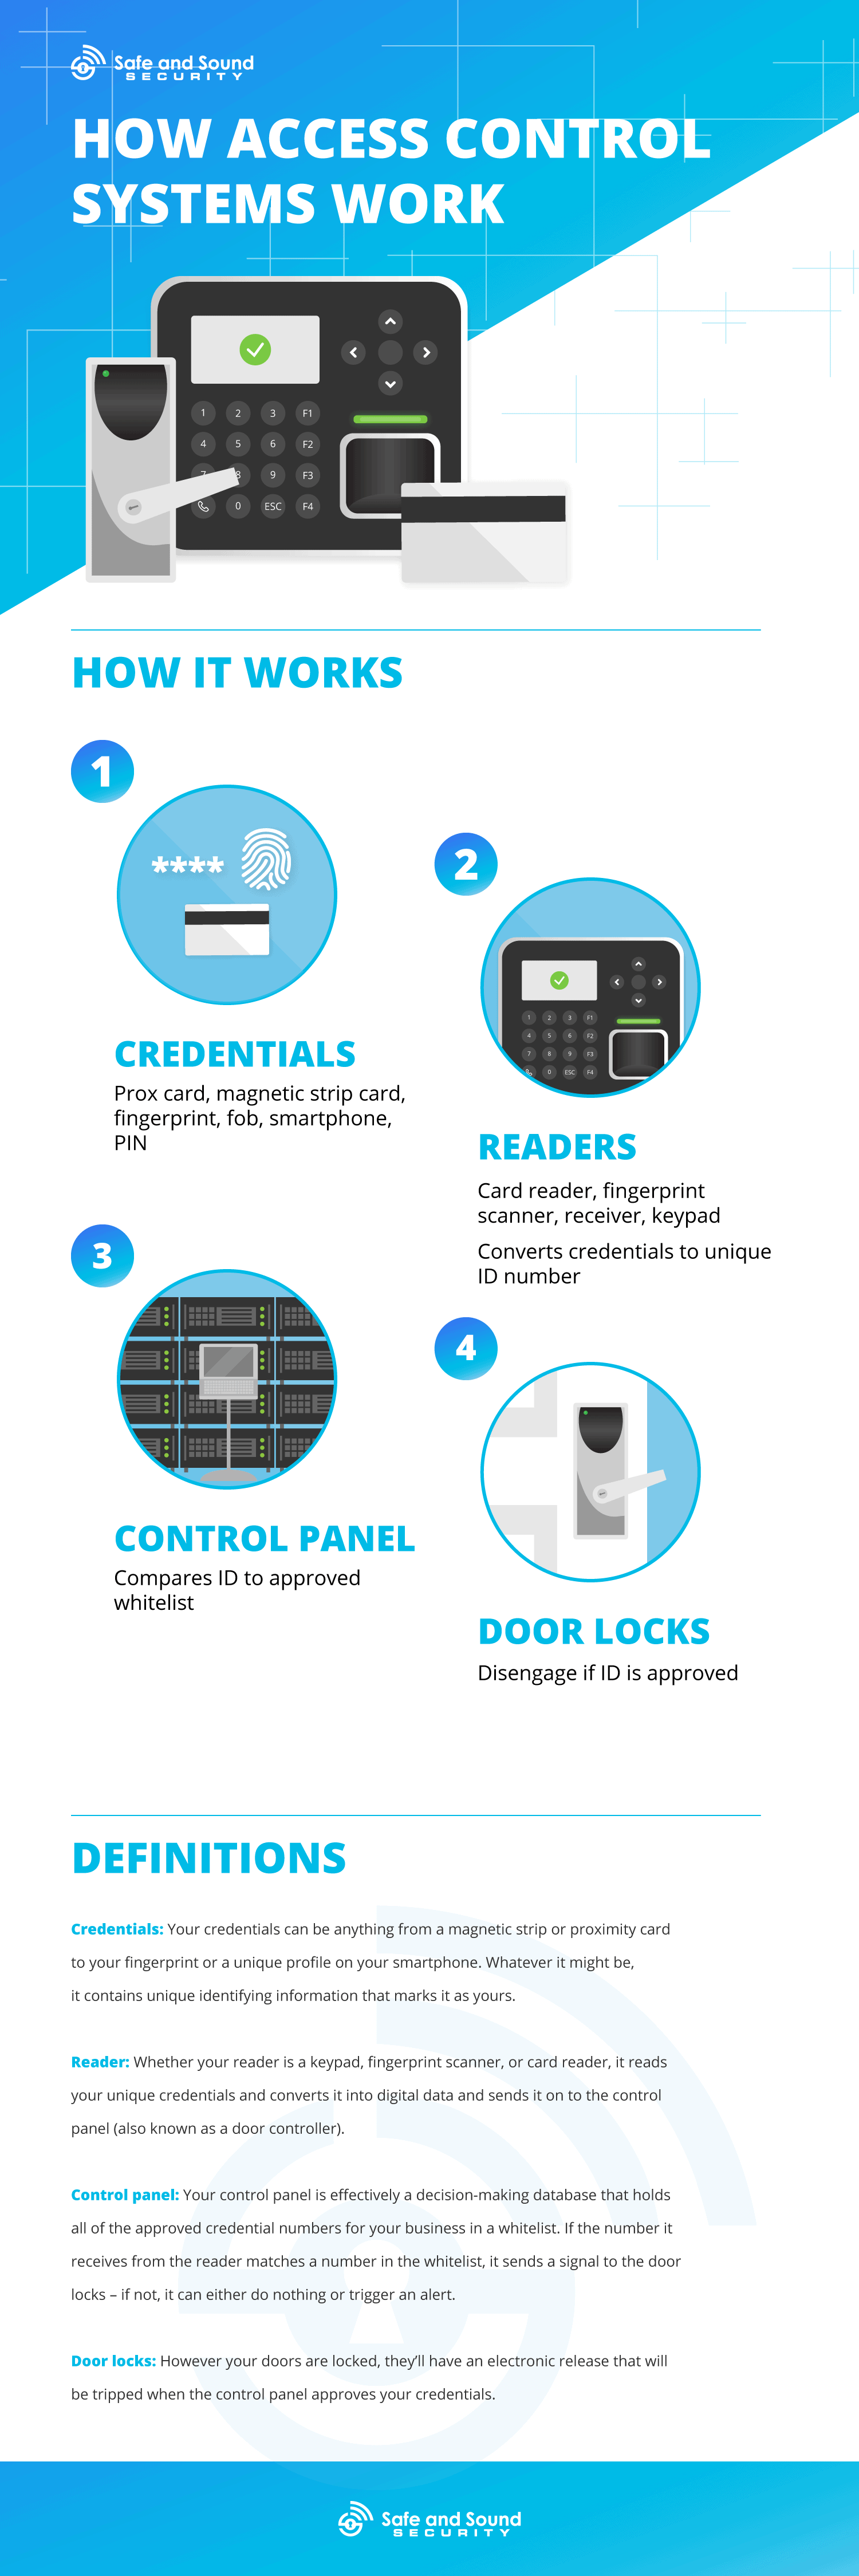 How access control systems work infographic